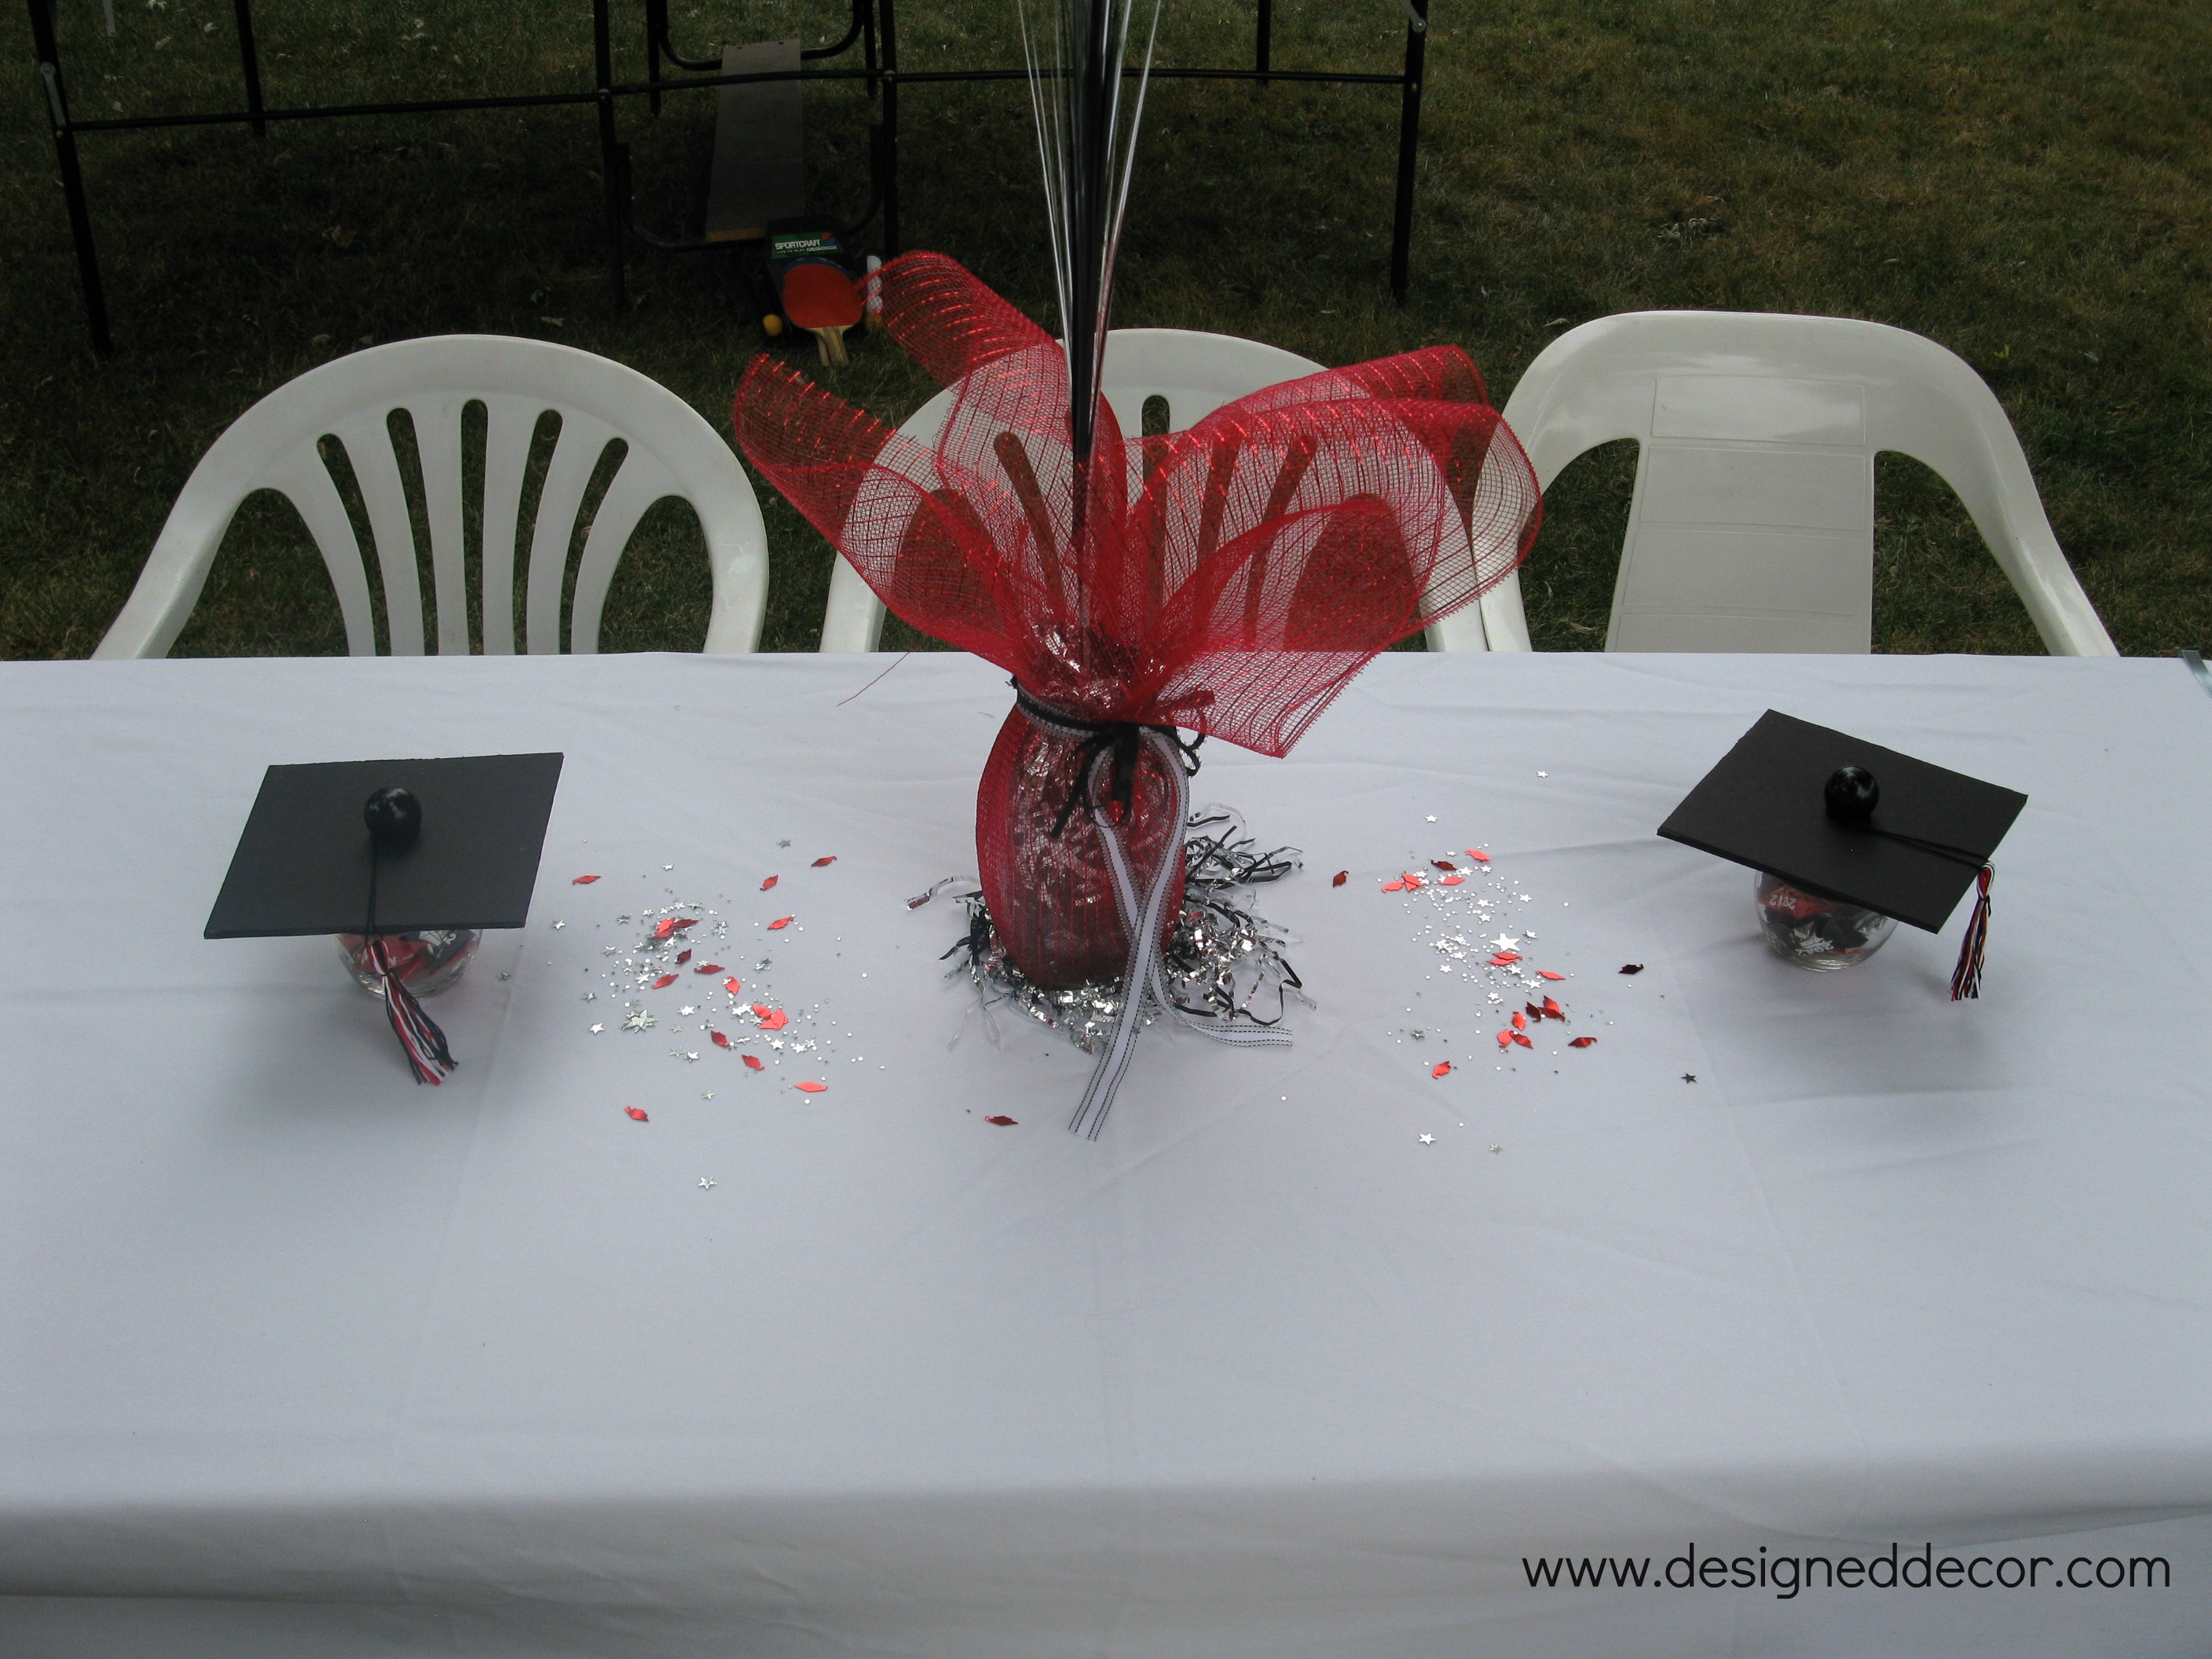 Floral Centerpiece For Graduation Party : Graduation party putting it all together designed decor